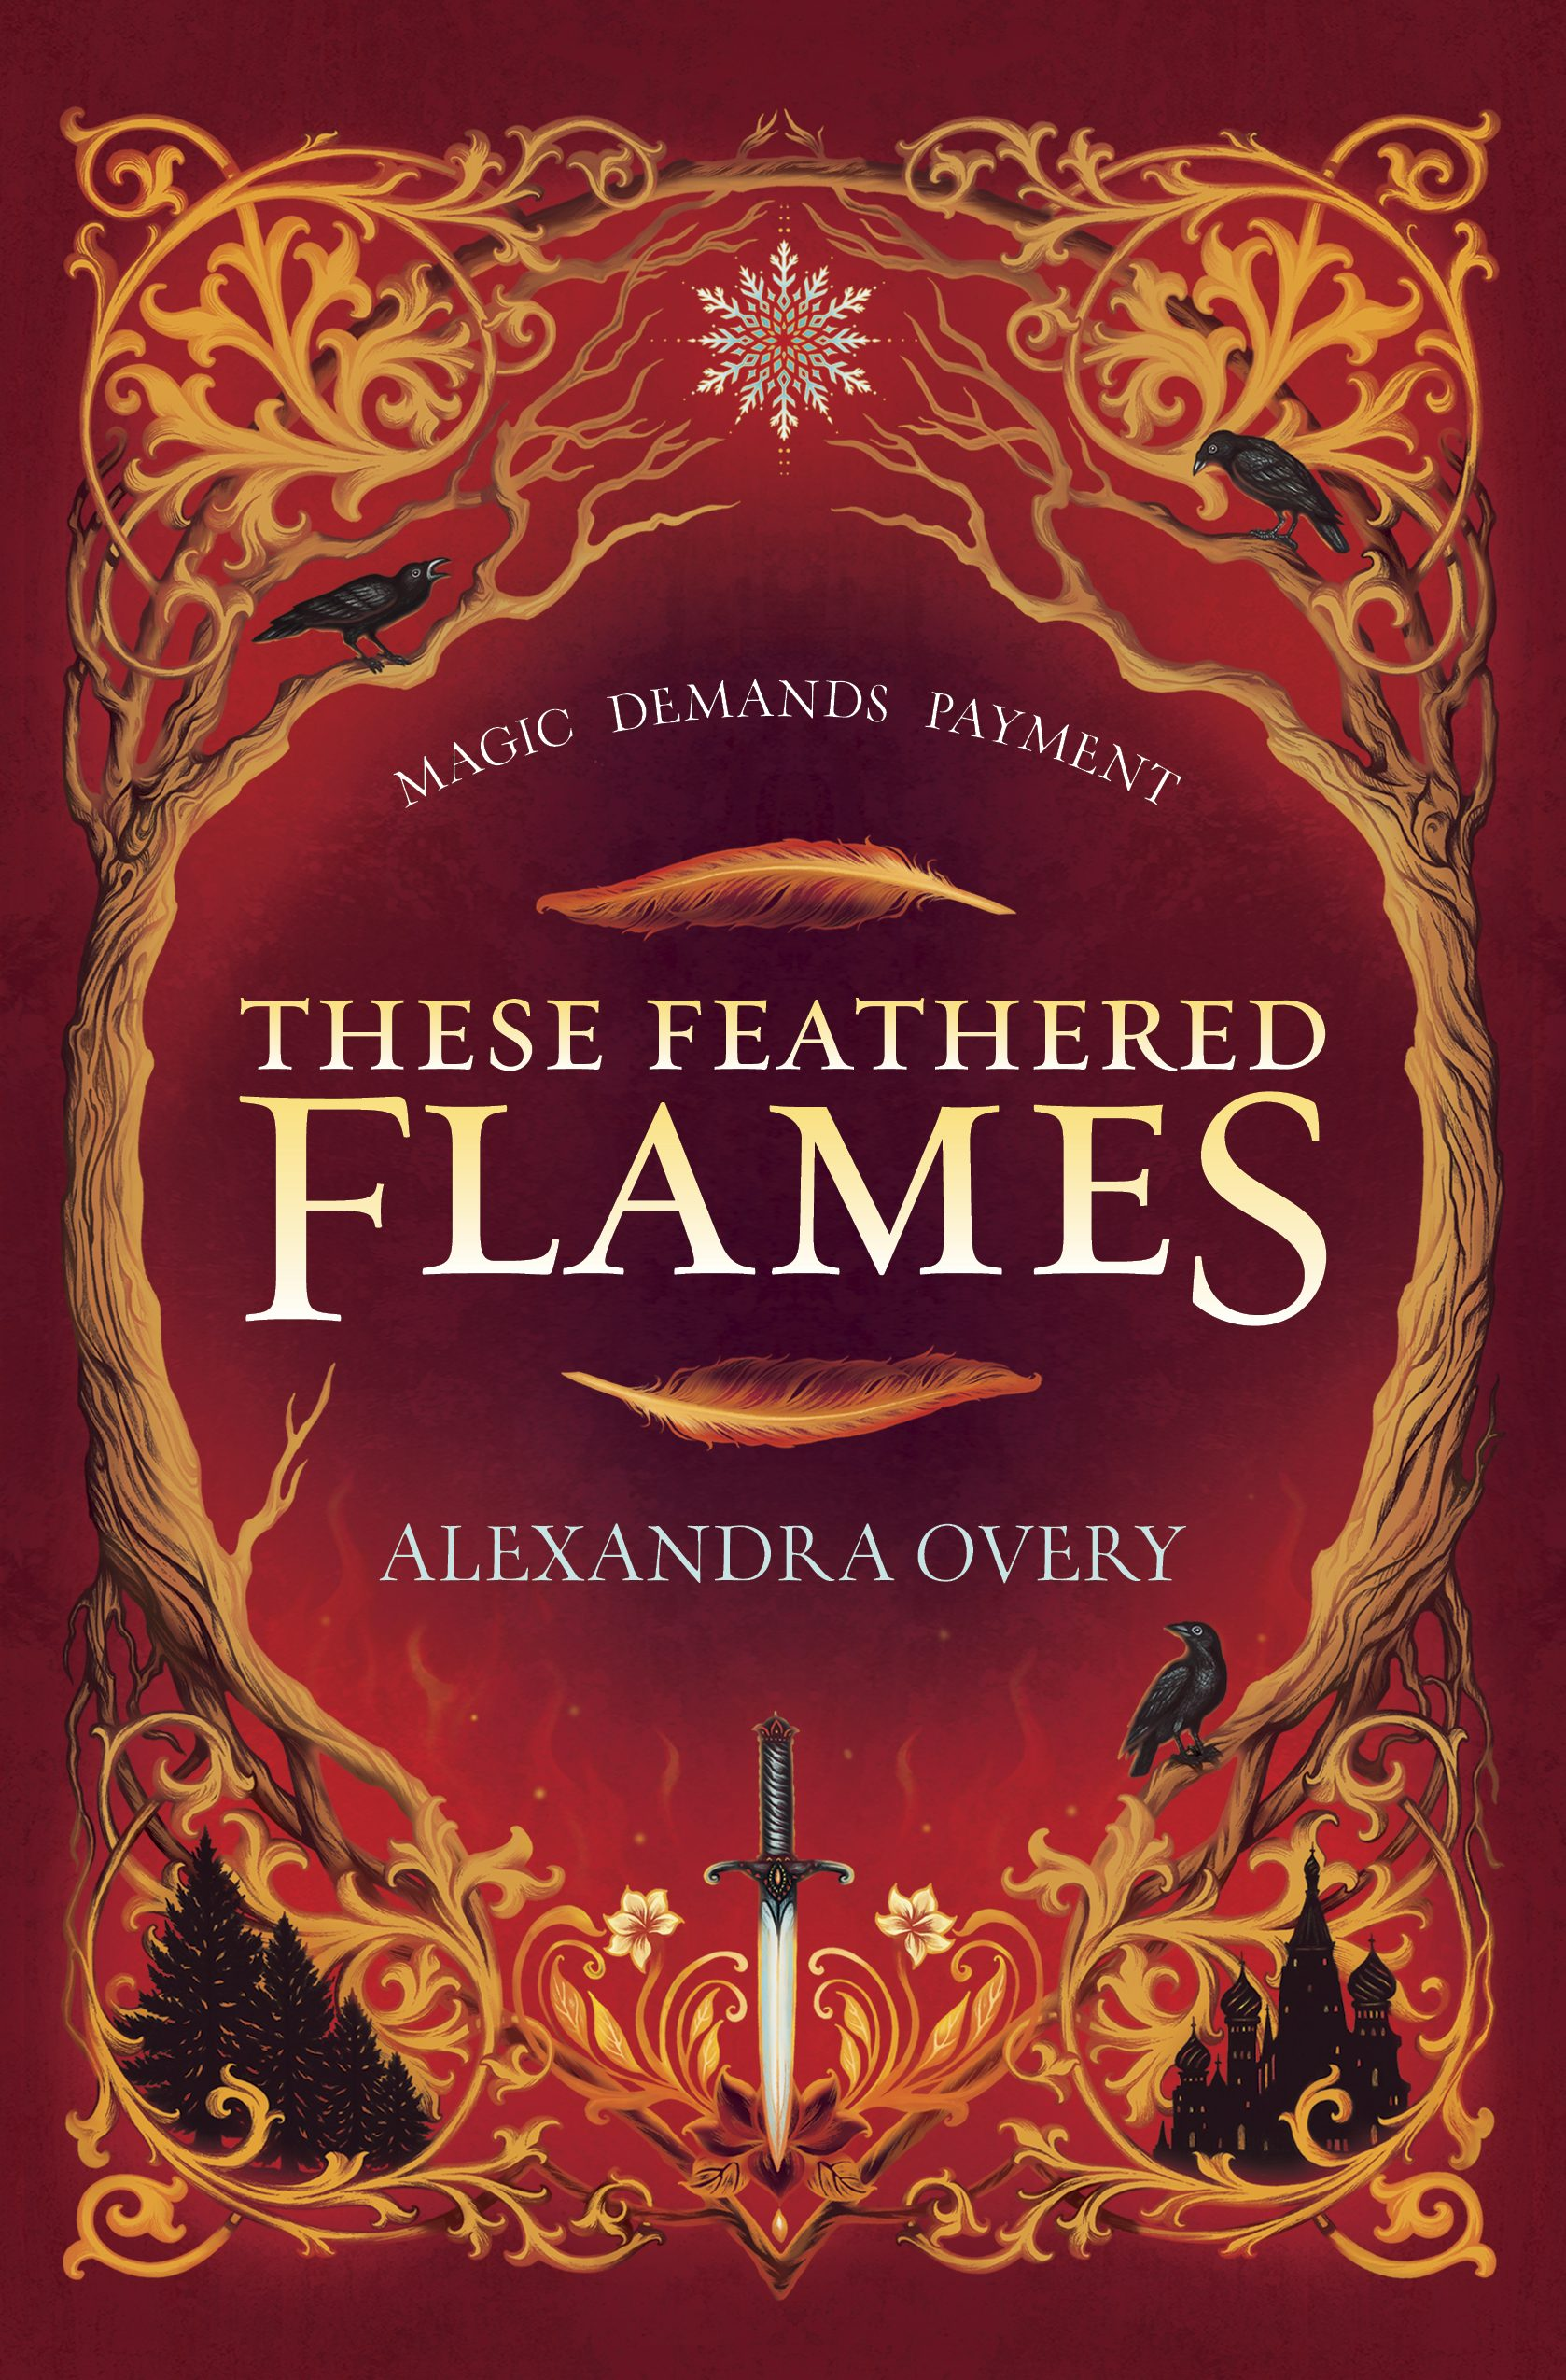 When Does These Feathered Flames By Alexandra Overy Come Out? 2021 YA Fantasy Releases